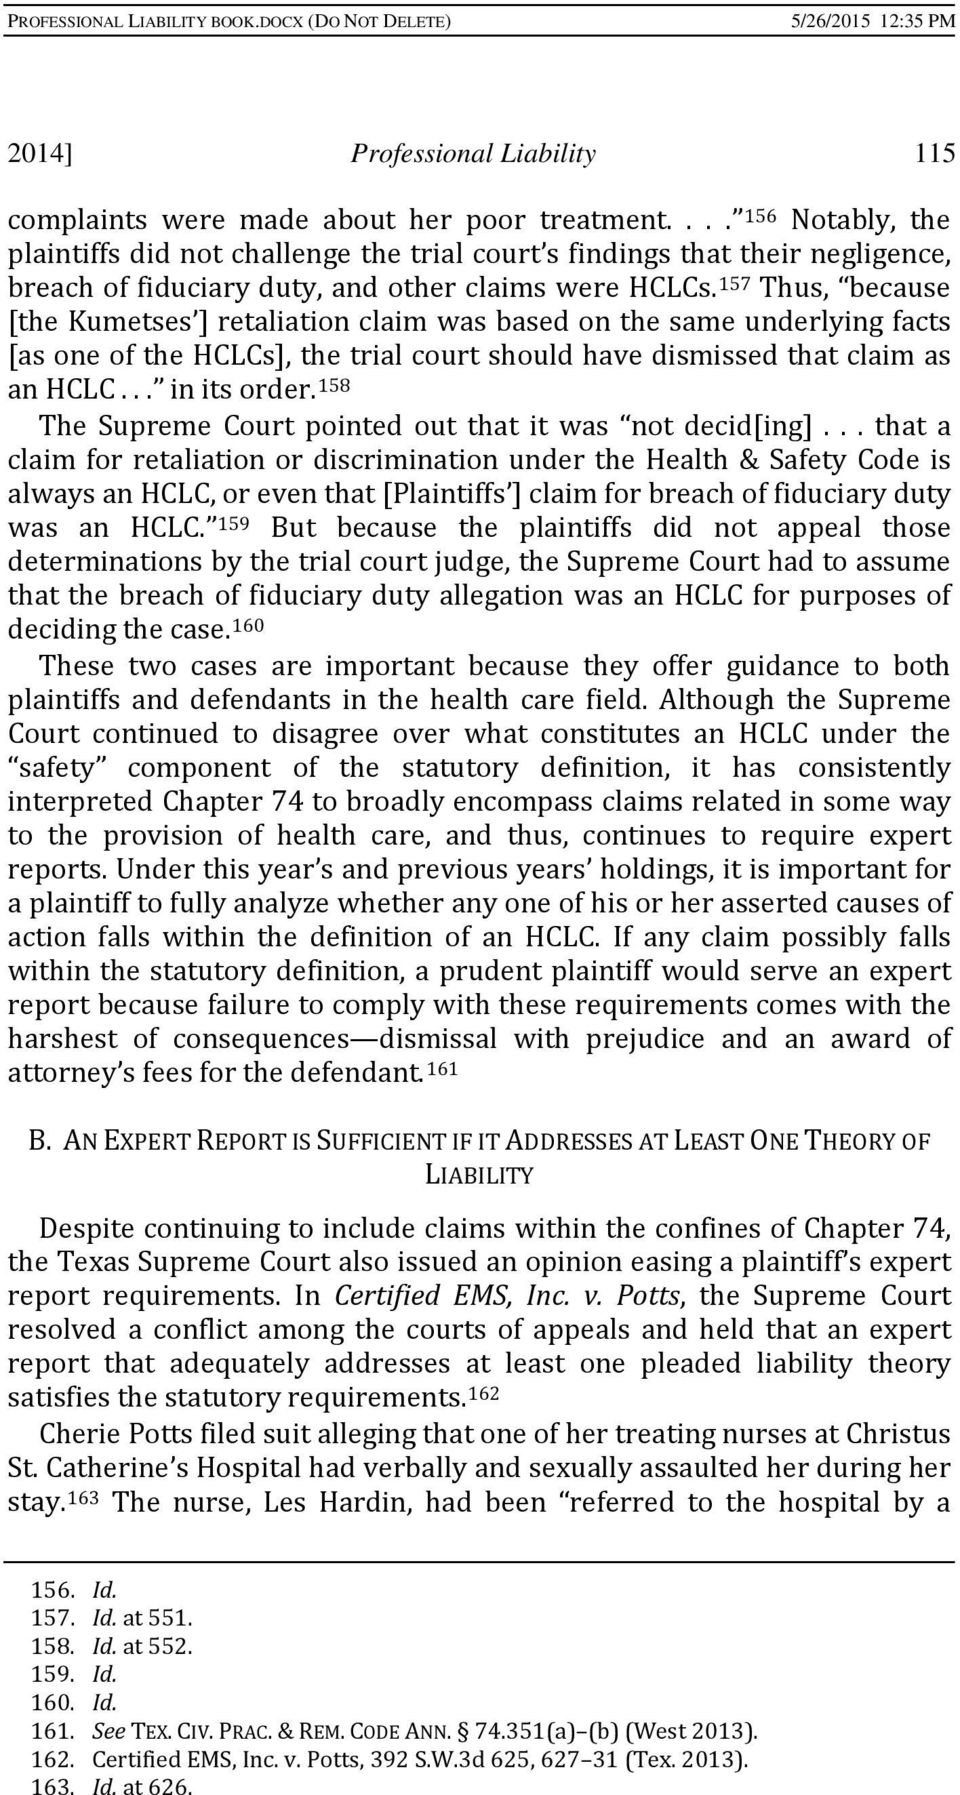 157 Thus, because [the Kumetses ] retaliation claim was based on the same underlying facts [as one of the HCLCs], the trial court should have dismissed that claim as an HCLC... in its order.